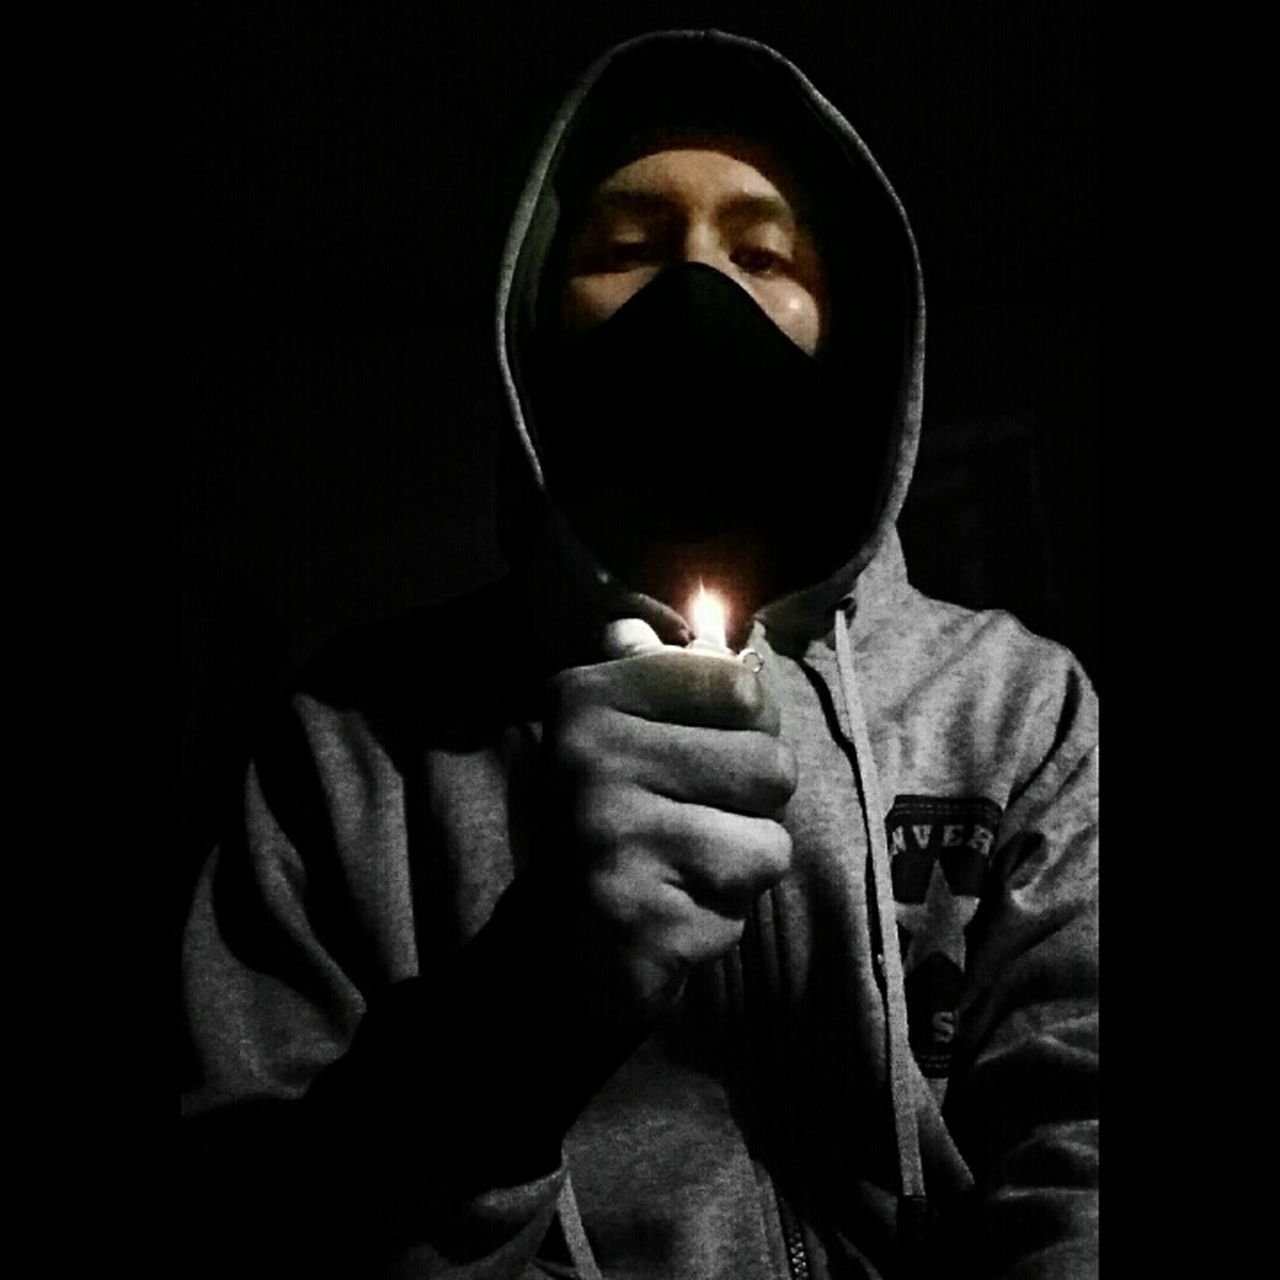 hood - clothing, front view, hooded shirt, real people, flame, one person, black background, indoors, illuminated, studio shot, night, close-up, young adult, people